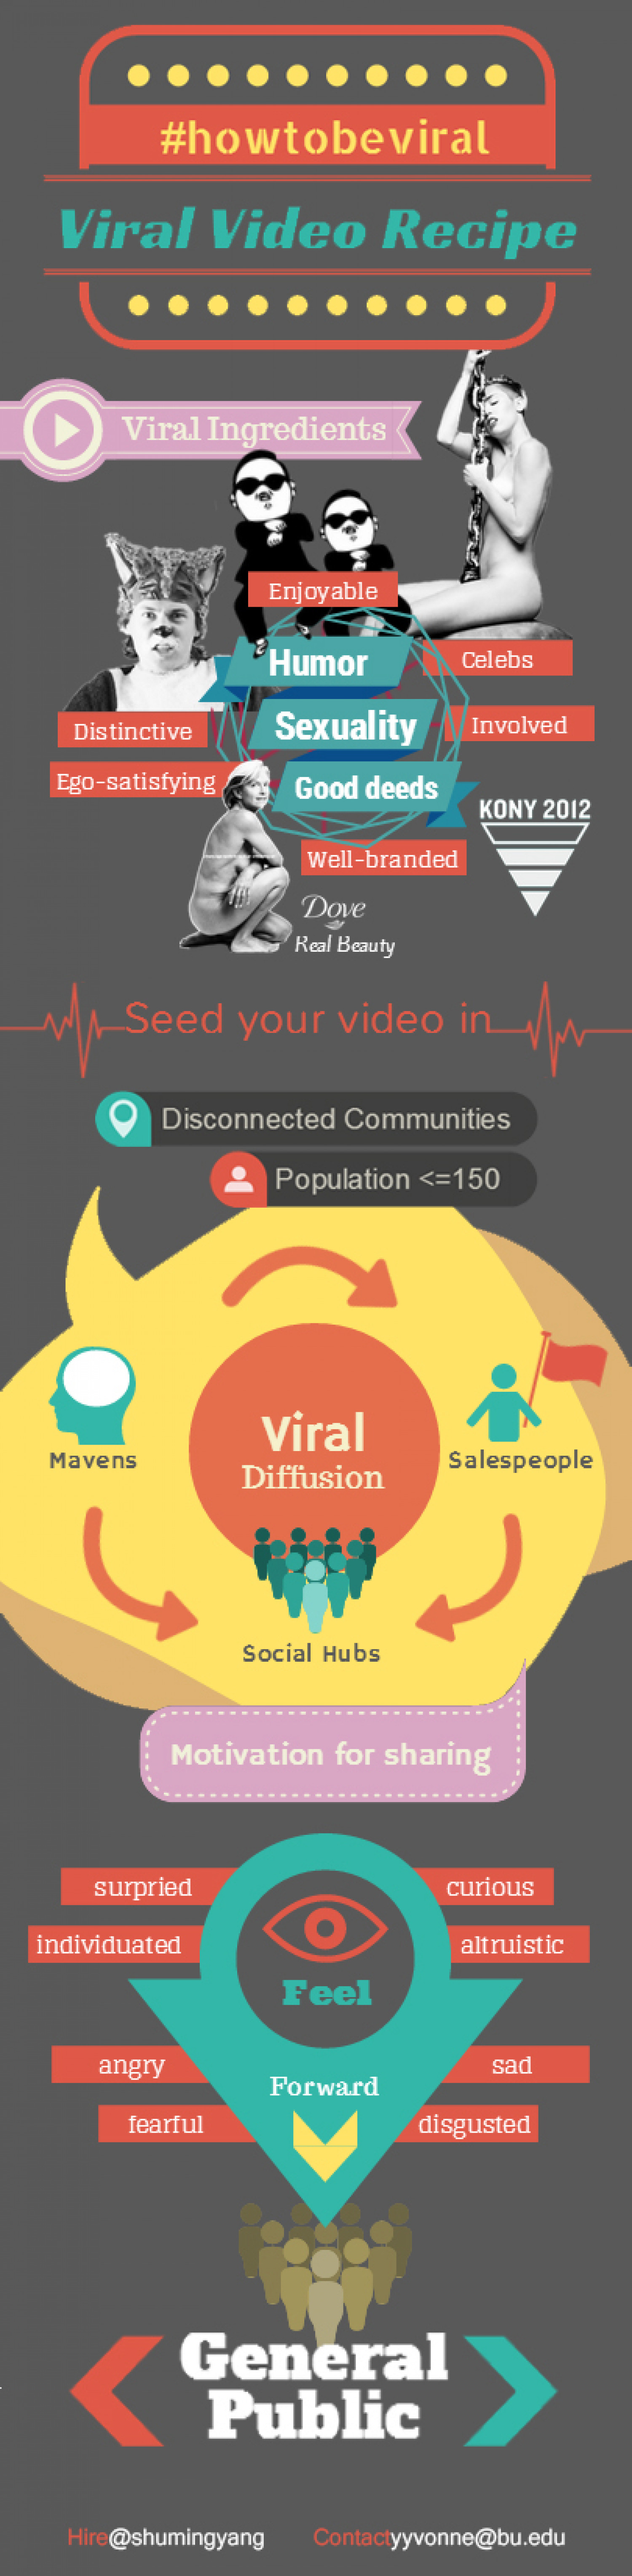 How to Make Viral Videos Infographic